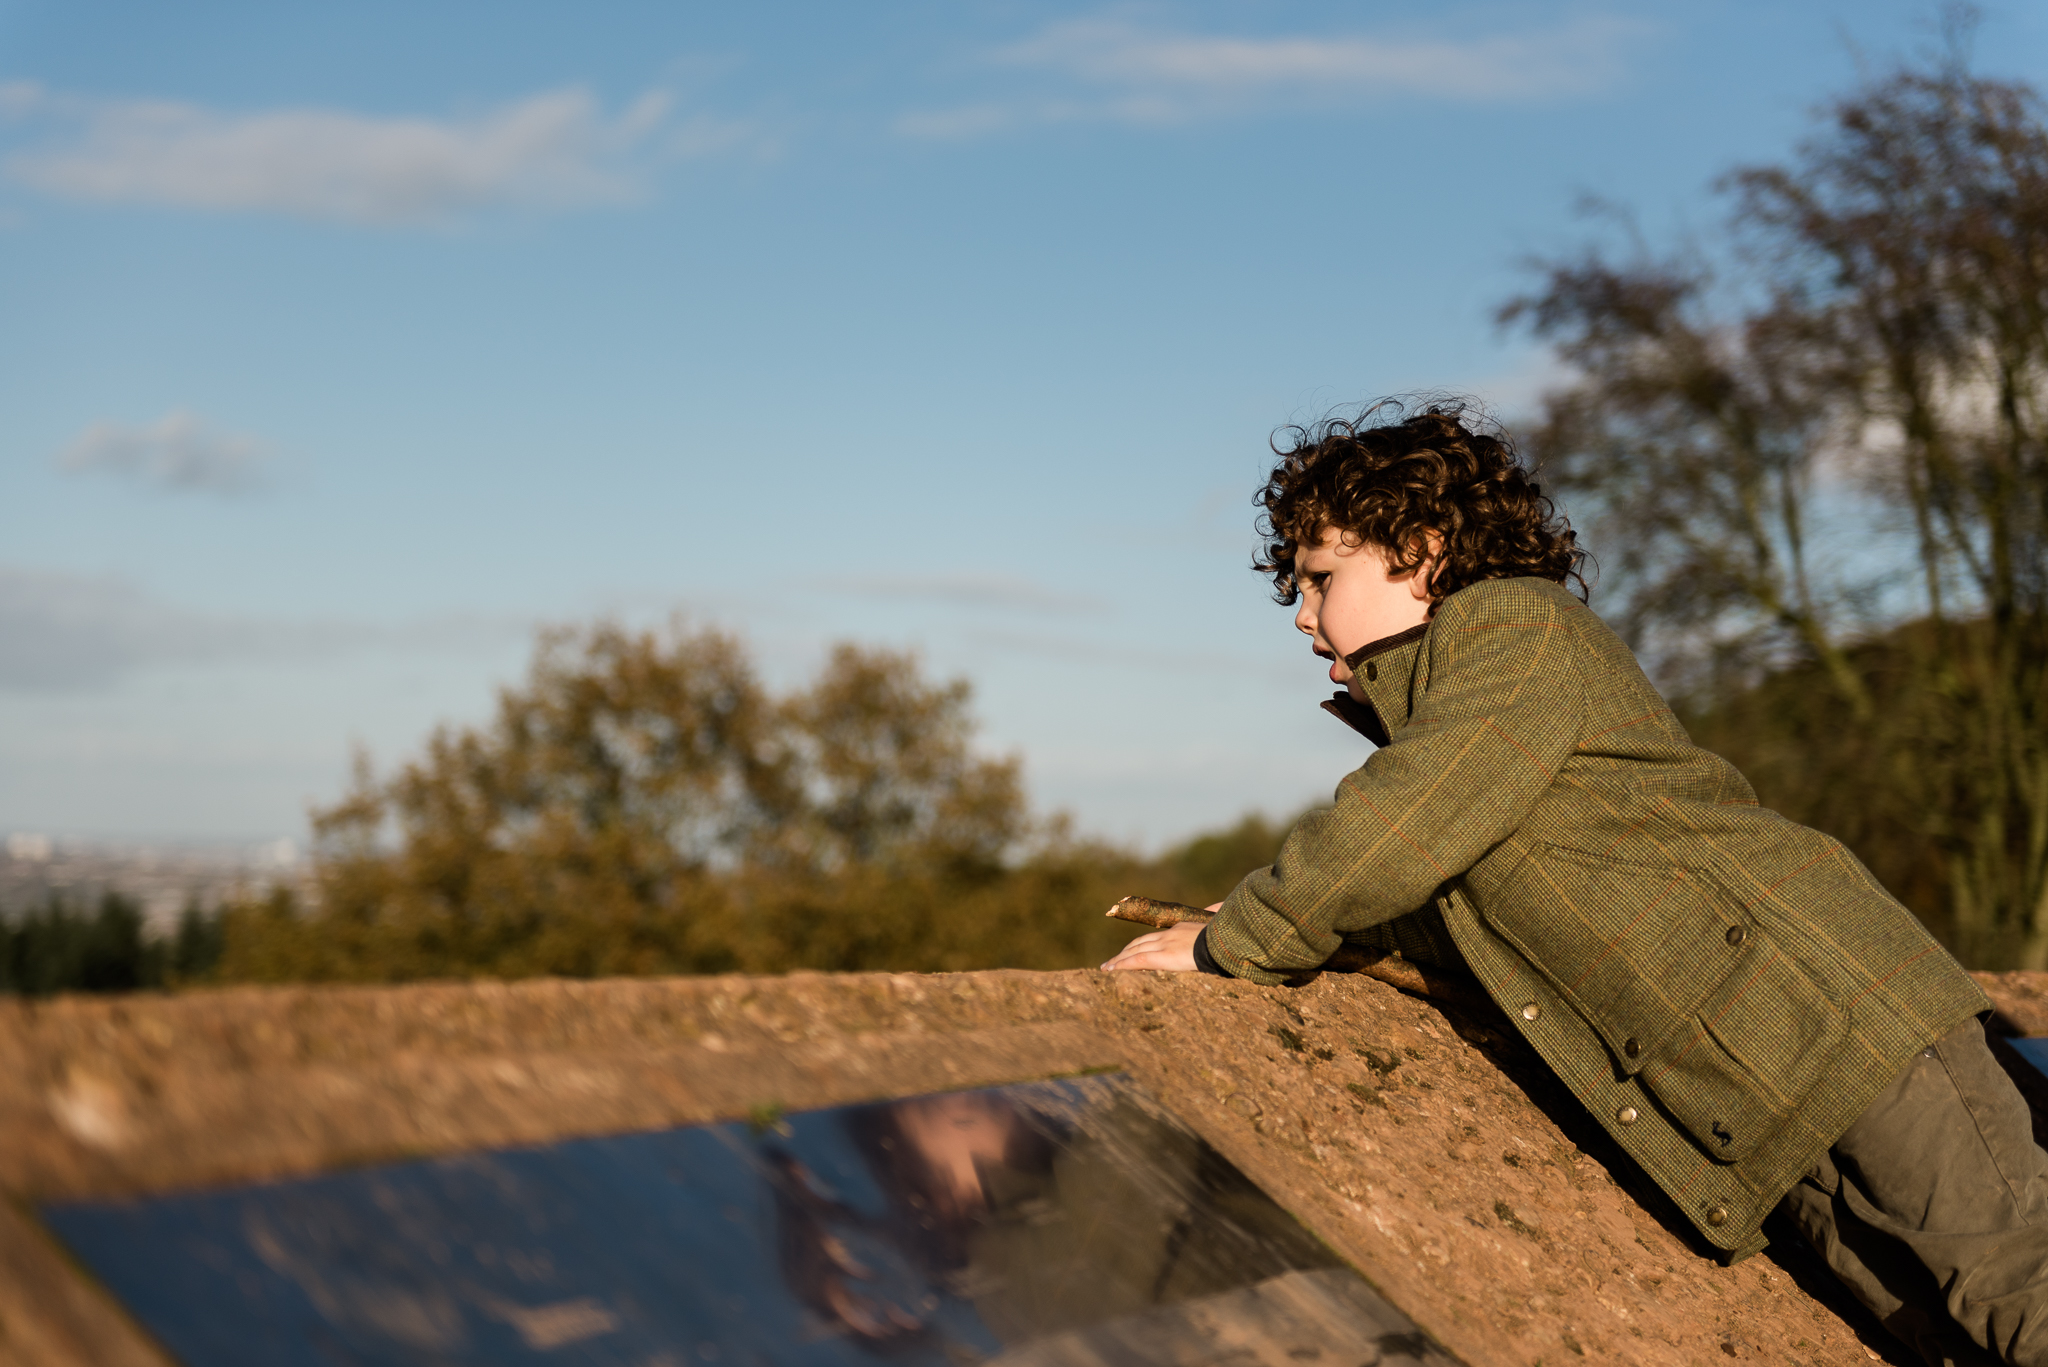 Autumn Documentary Lifestyle Family Photography at Clent Hills, Worcestershire Country Park countryside outdoors nature - Jenny Harper-13.jpg